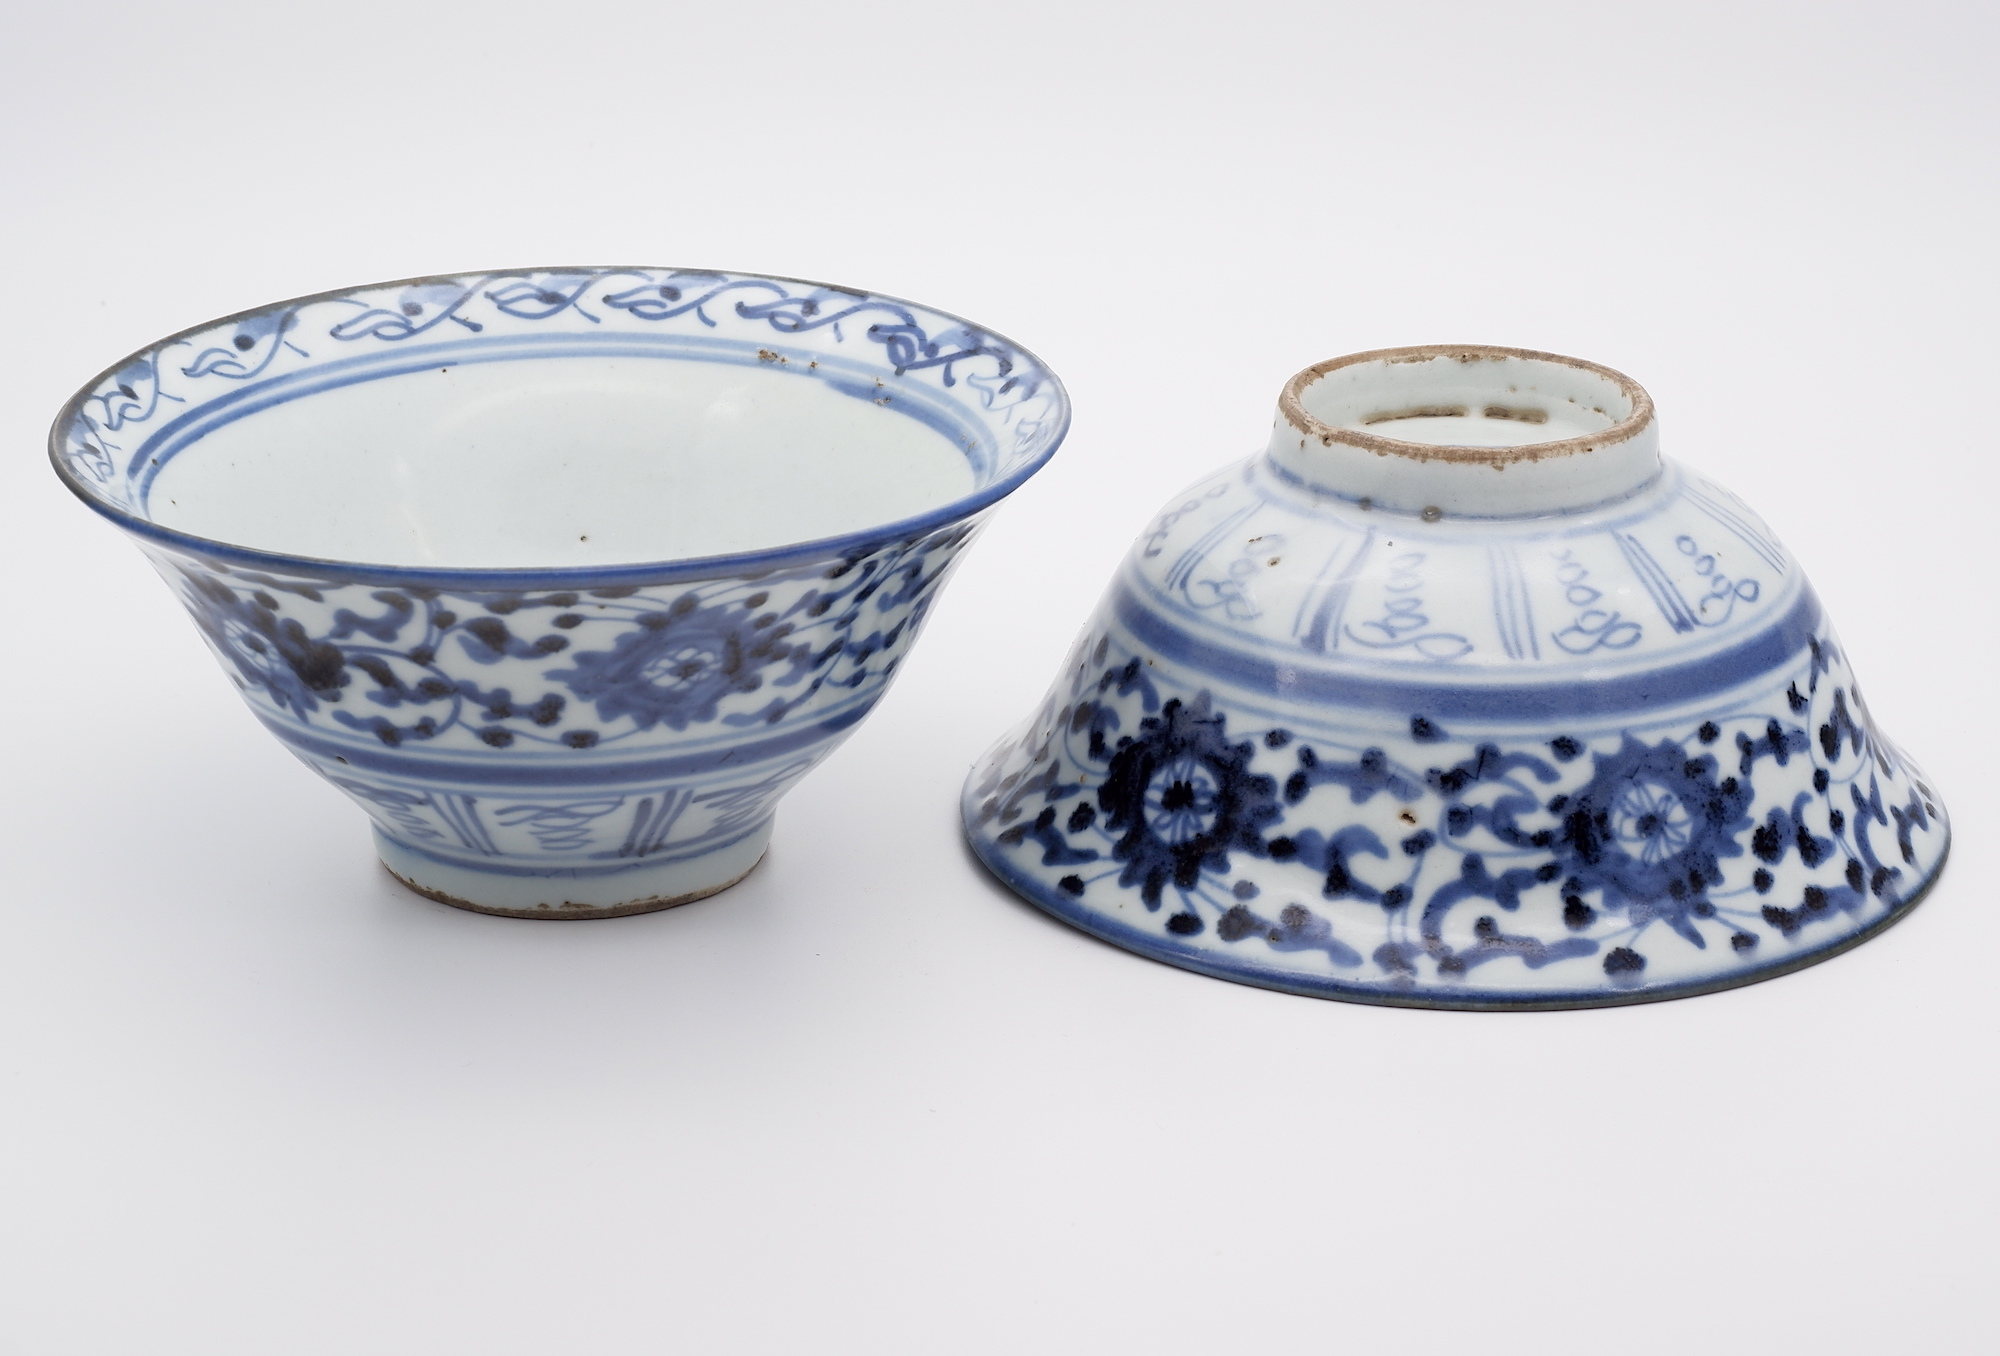 'Pair Chinese Fujian Ware Blue and White Conical Bowls Early 19th Century'